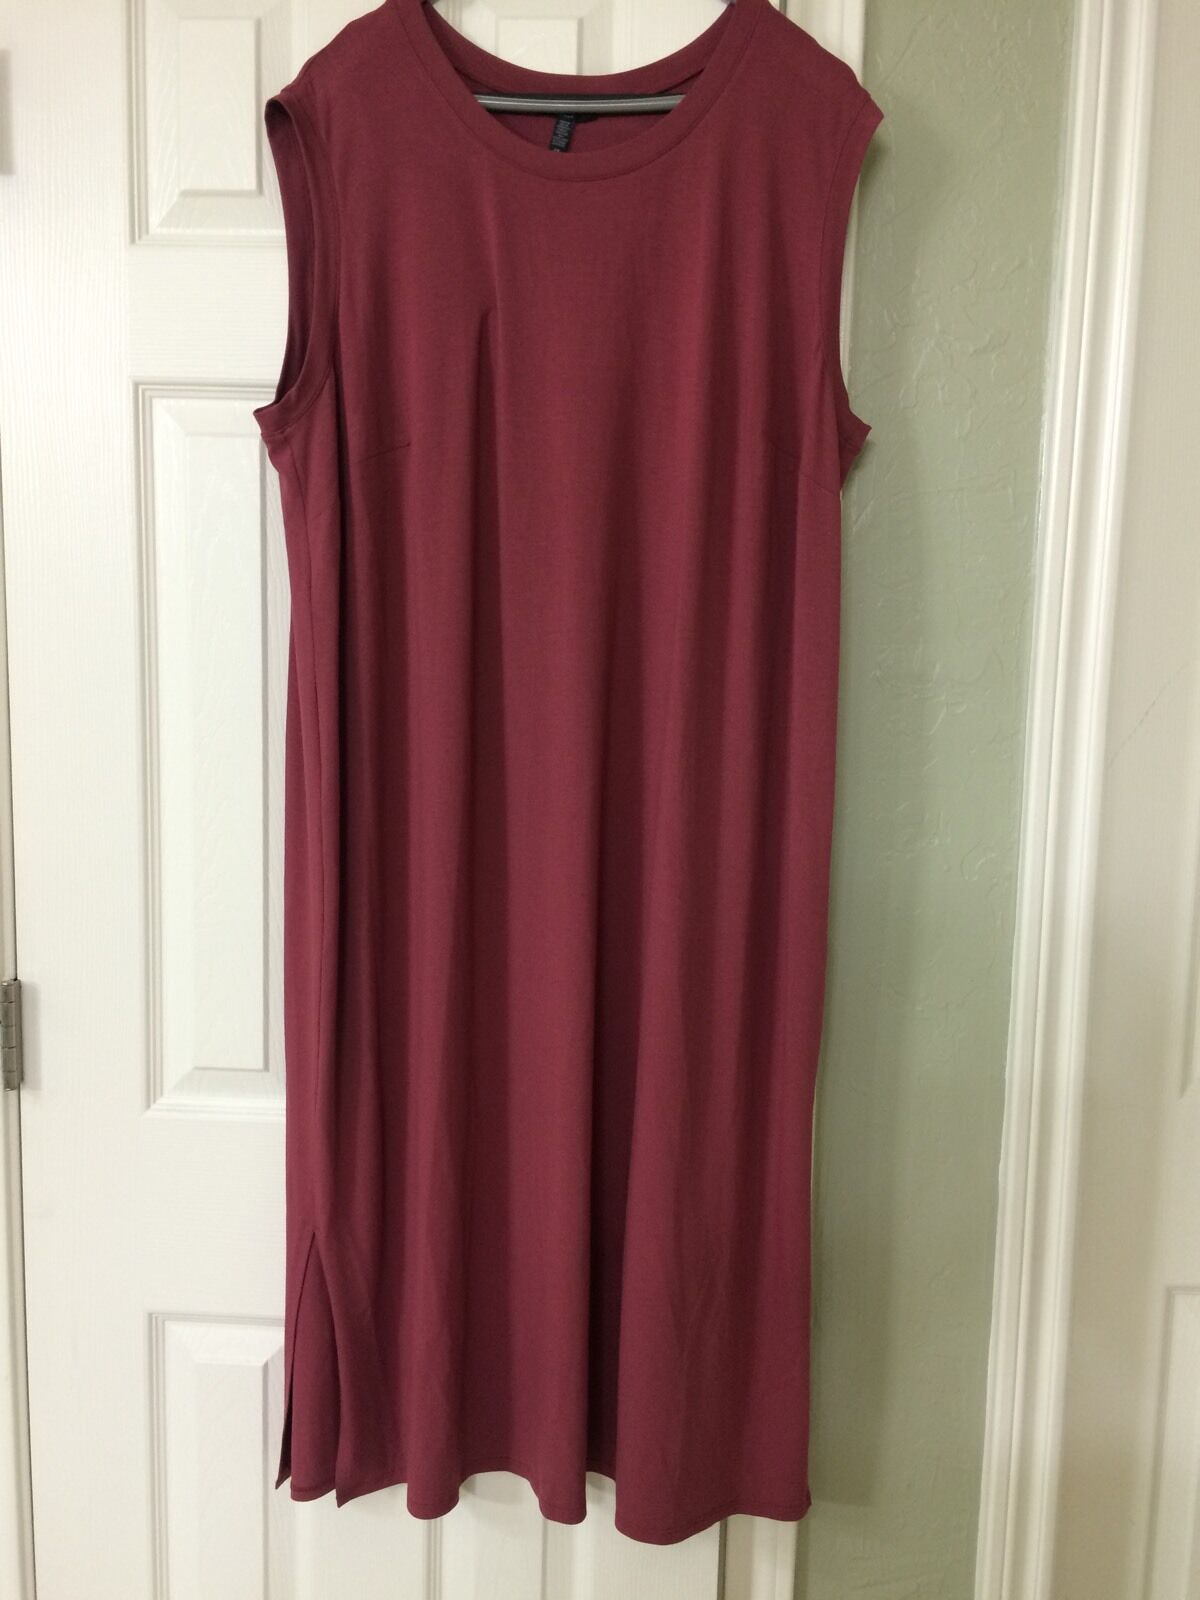 PL NWT Eileen Fisher RosaWOOD Viscose Jersey Round Neck Calf Lenght Dress